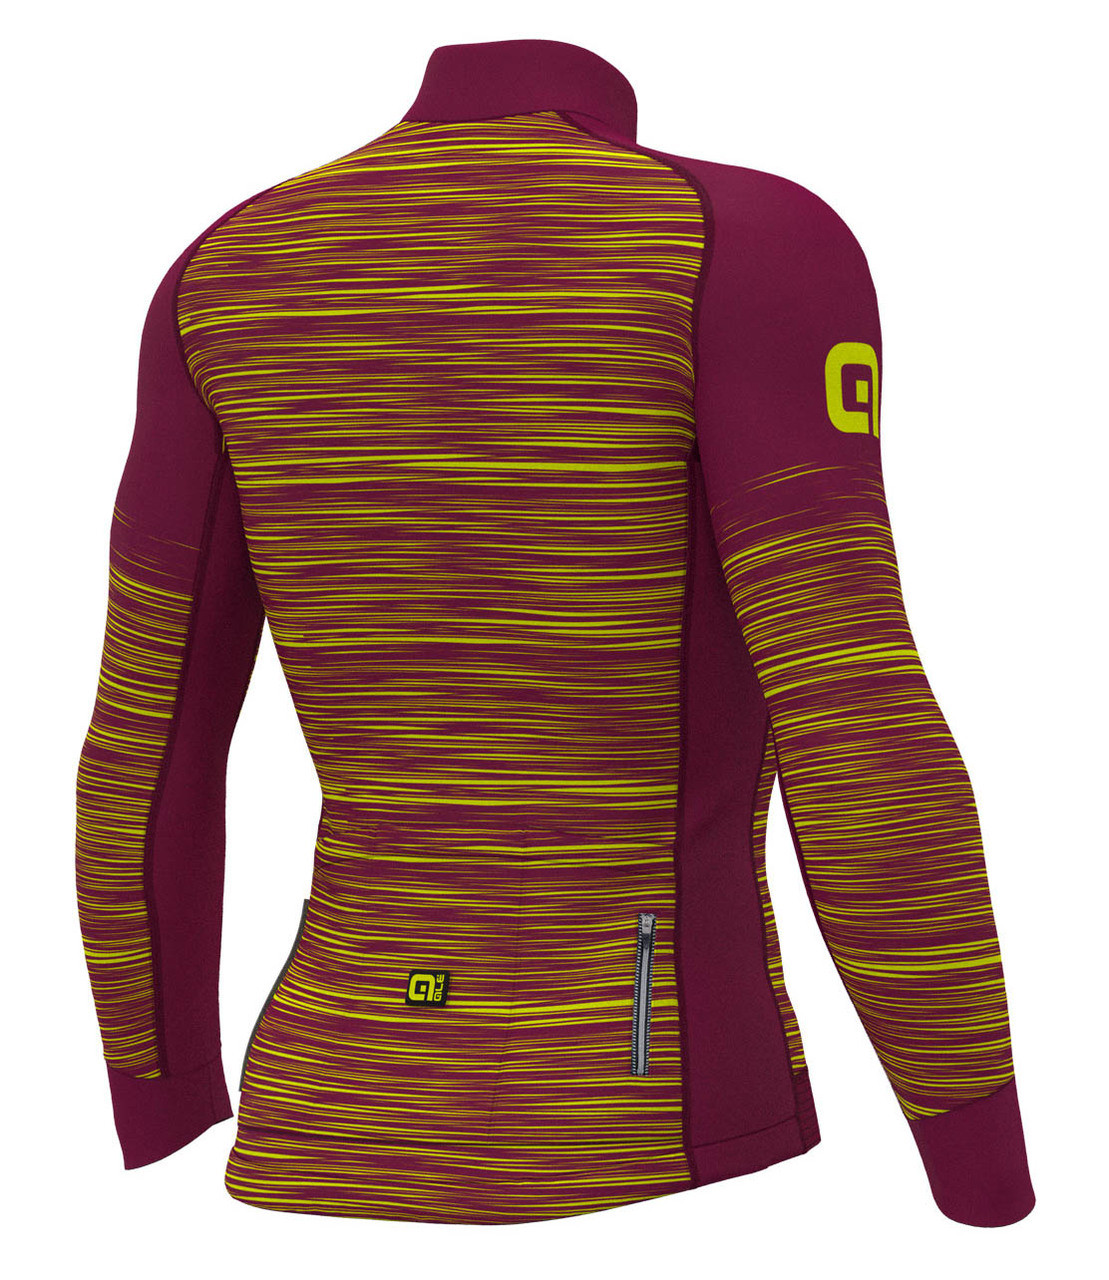 ALE' The End PRR Purple Yellow Long Sleeve Jersey Rear